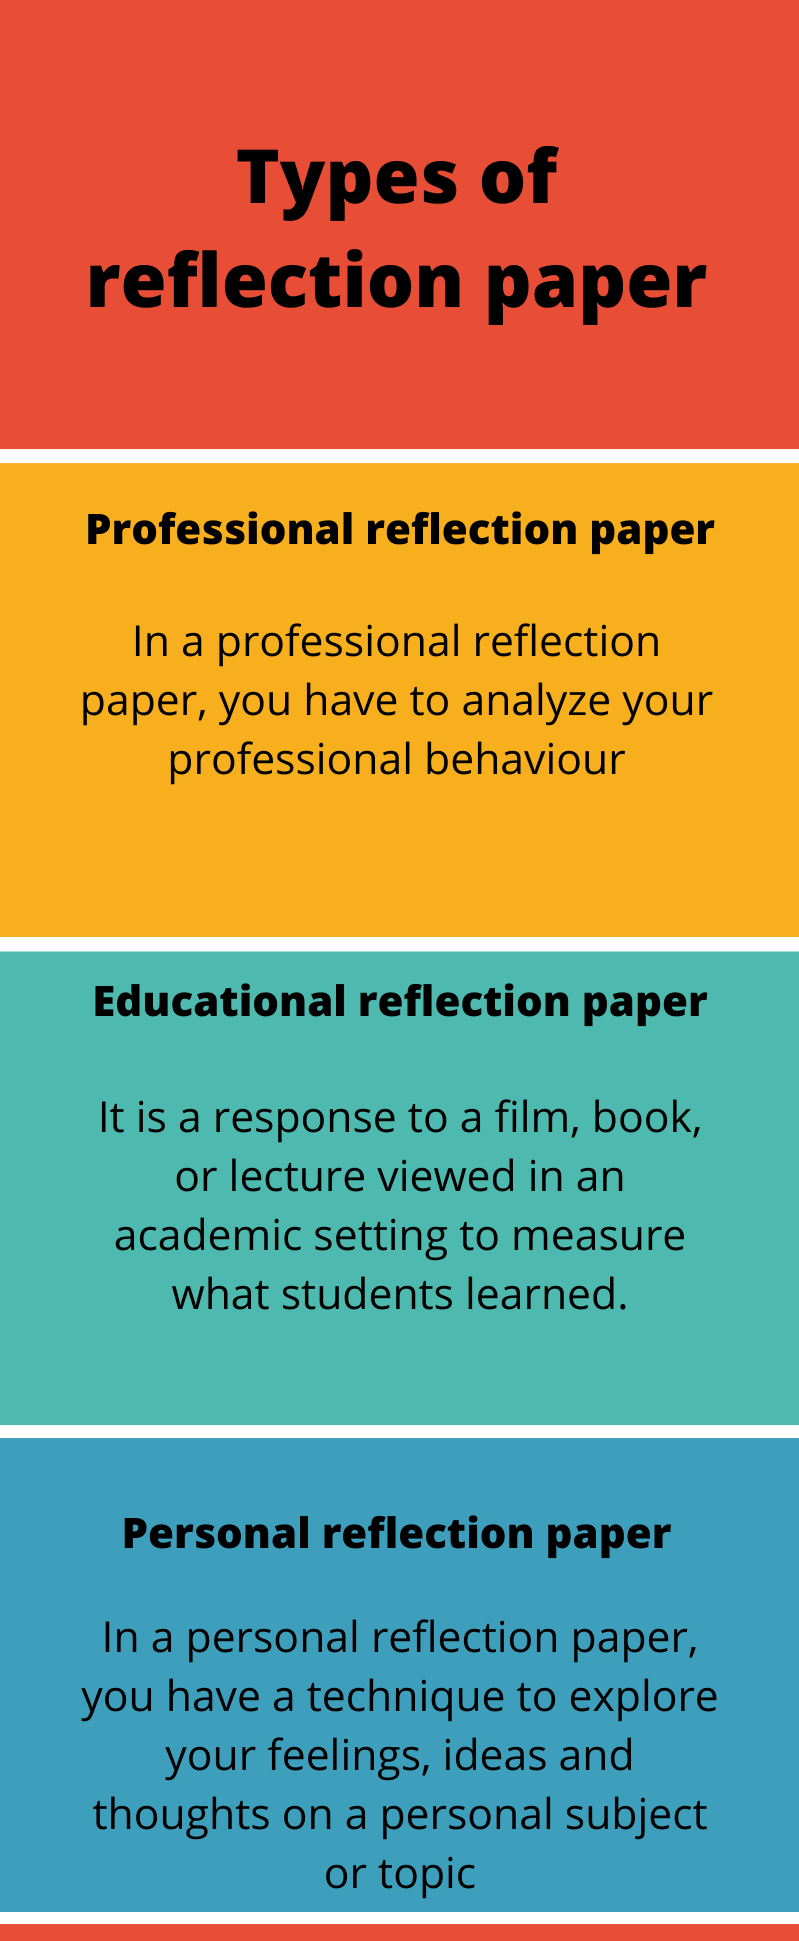 reflection-paper